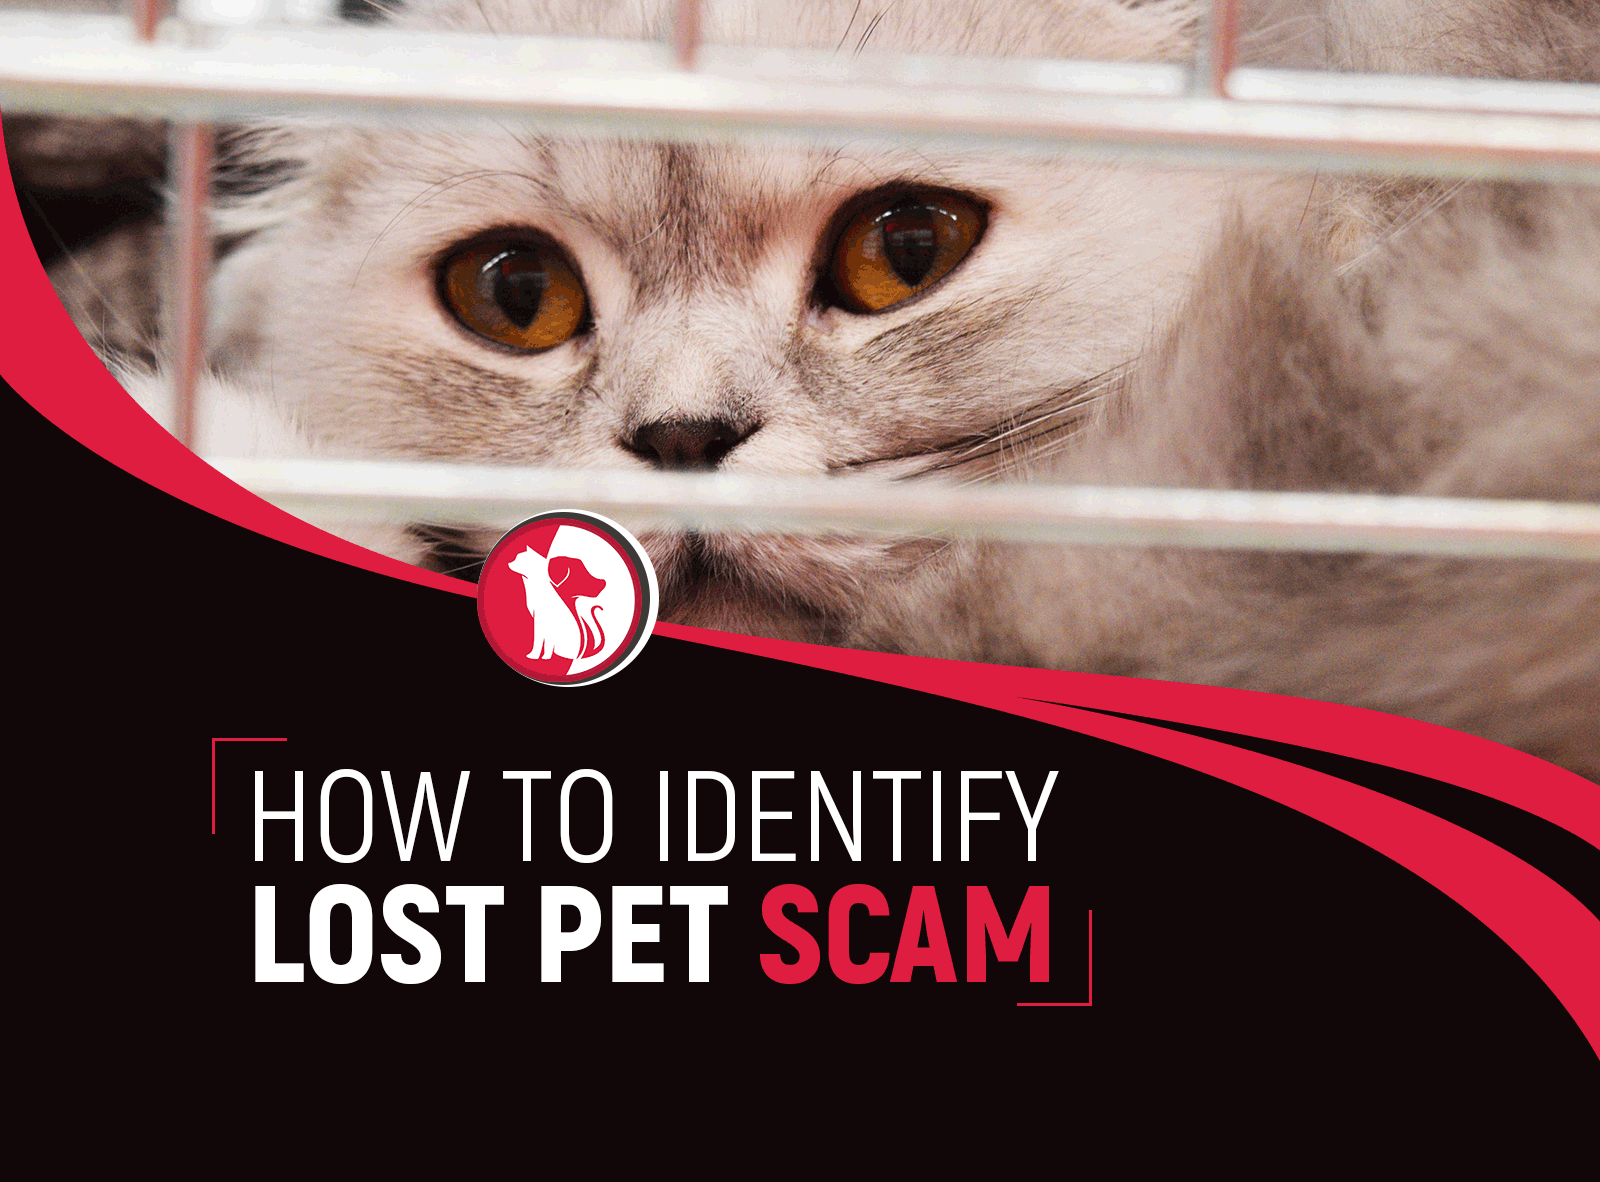 How to Identify Lost Pet Scam from Having and Encountered Them Before